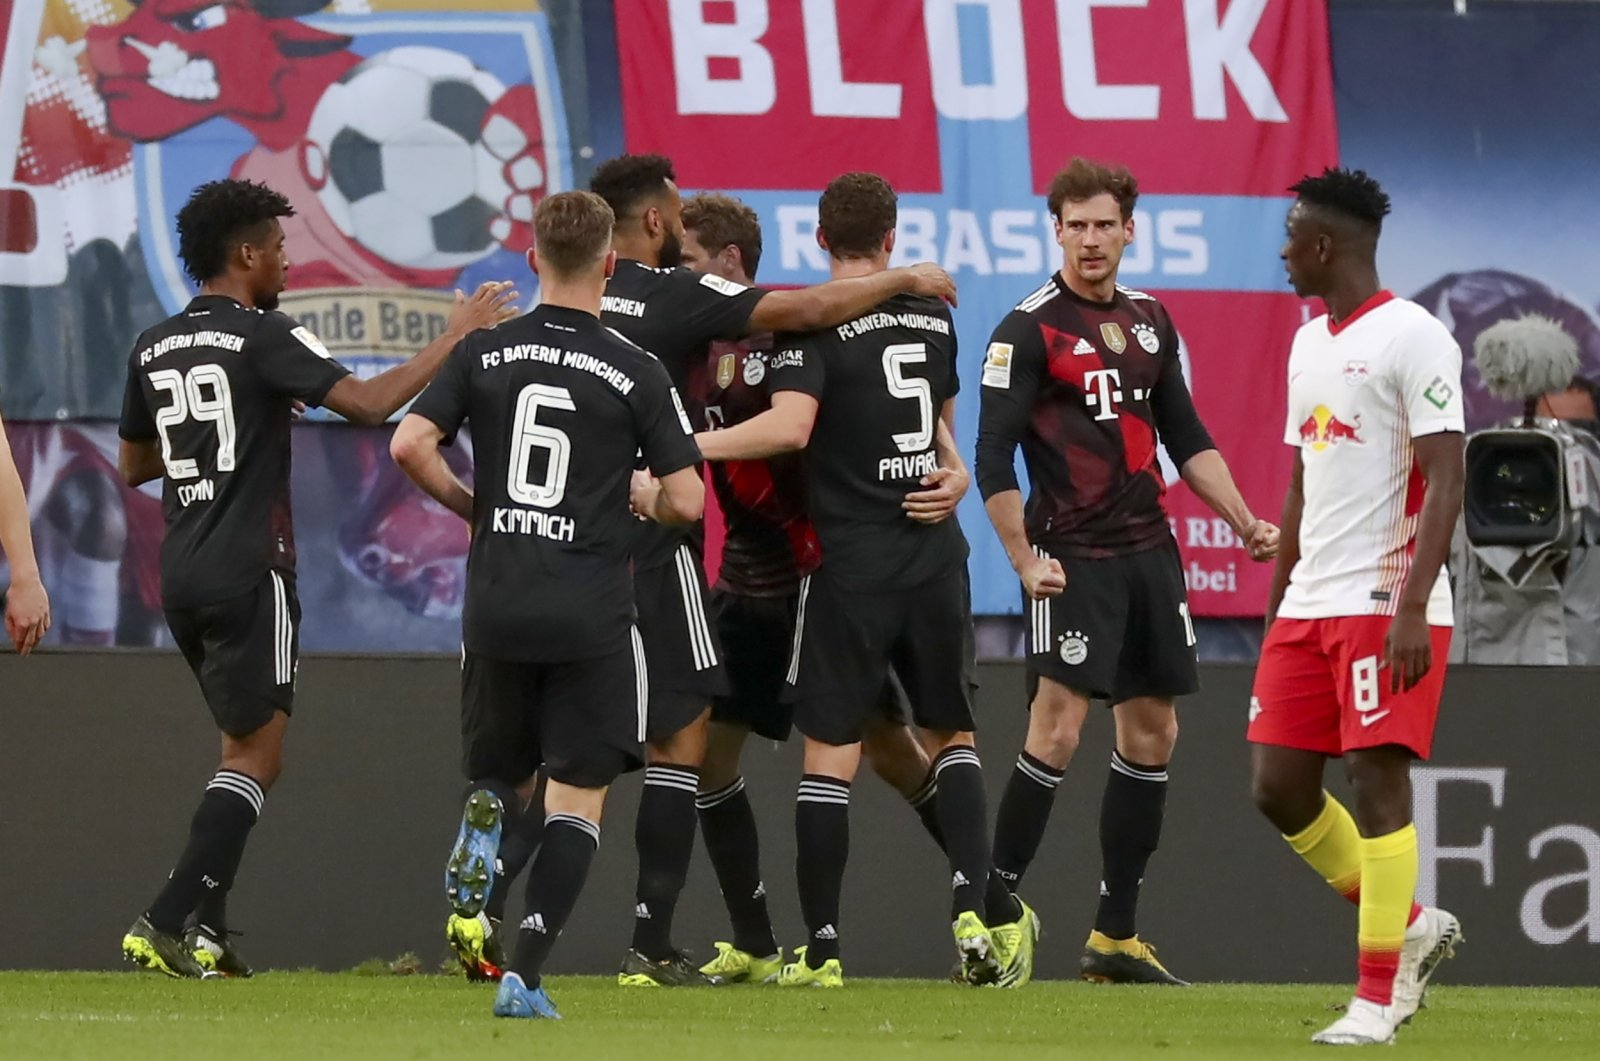 Bayern Munich's Leon Goretzka (2nd R) celebrates with teammates after scoring the opening goal during the German Bundesliga soccer match against RB Leipzig at Red Bull Arena, Leipzig, Germany, April 03, 2021. (Filip Singer/Pool/DFL via EPA)